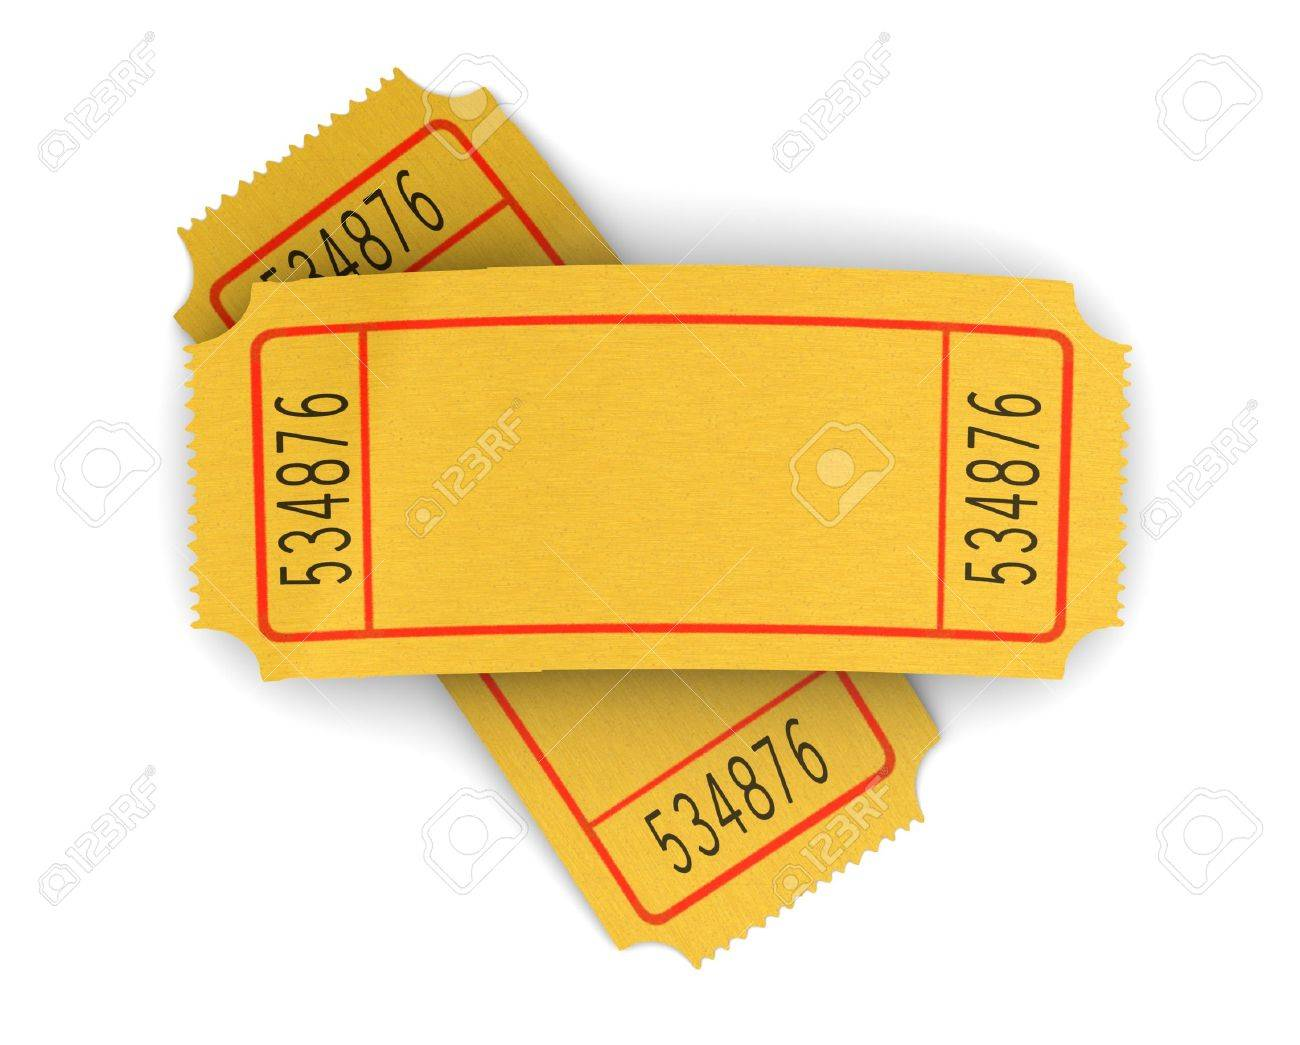 raffle stock vector illustration and royalty raffle clipart raffle 3d illustration of two blank cinema tickets over white background